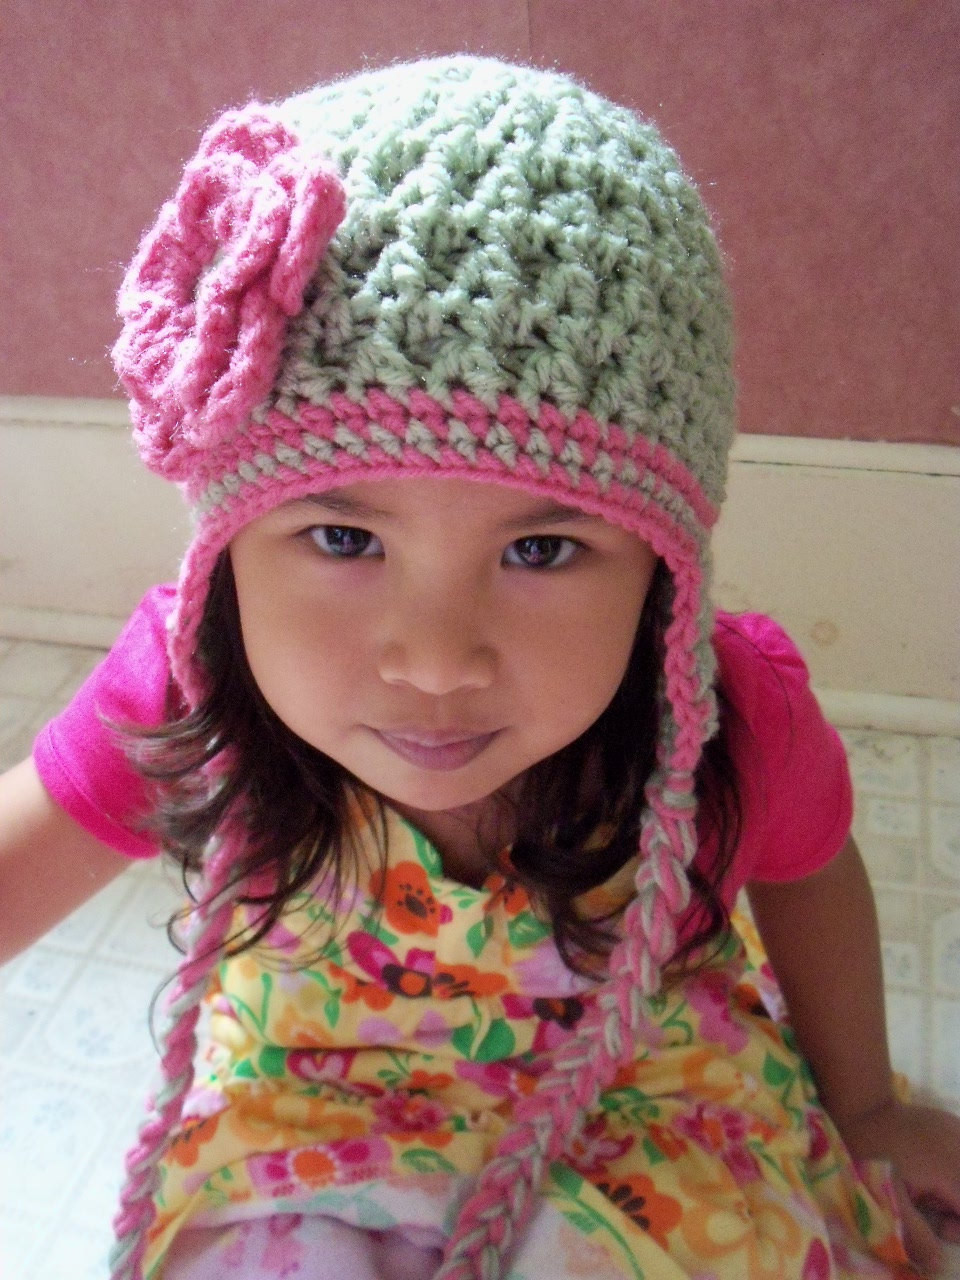 Unique Crochet Children Hattoddler Hat Baby Girl Hat Crochet Crochet toddler Hat Pattern Of Delightful 40 Ideas Crochet toddler Hat Pattern